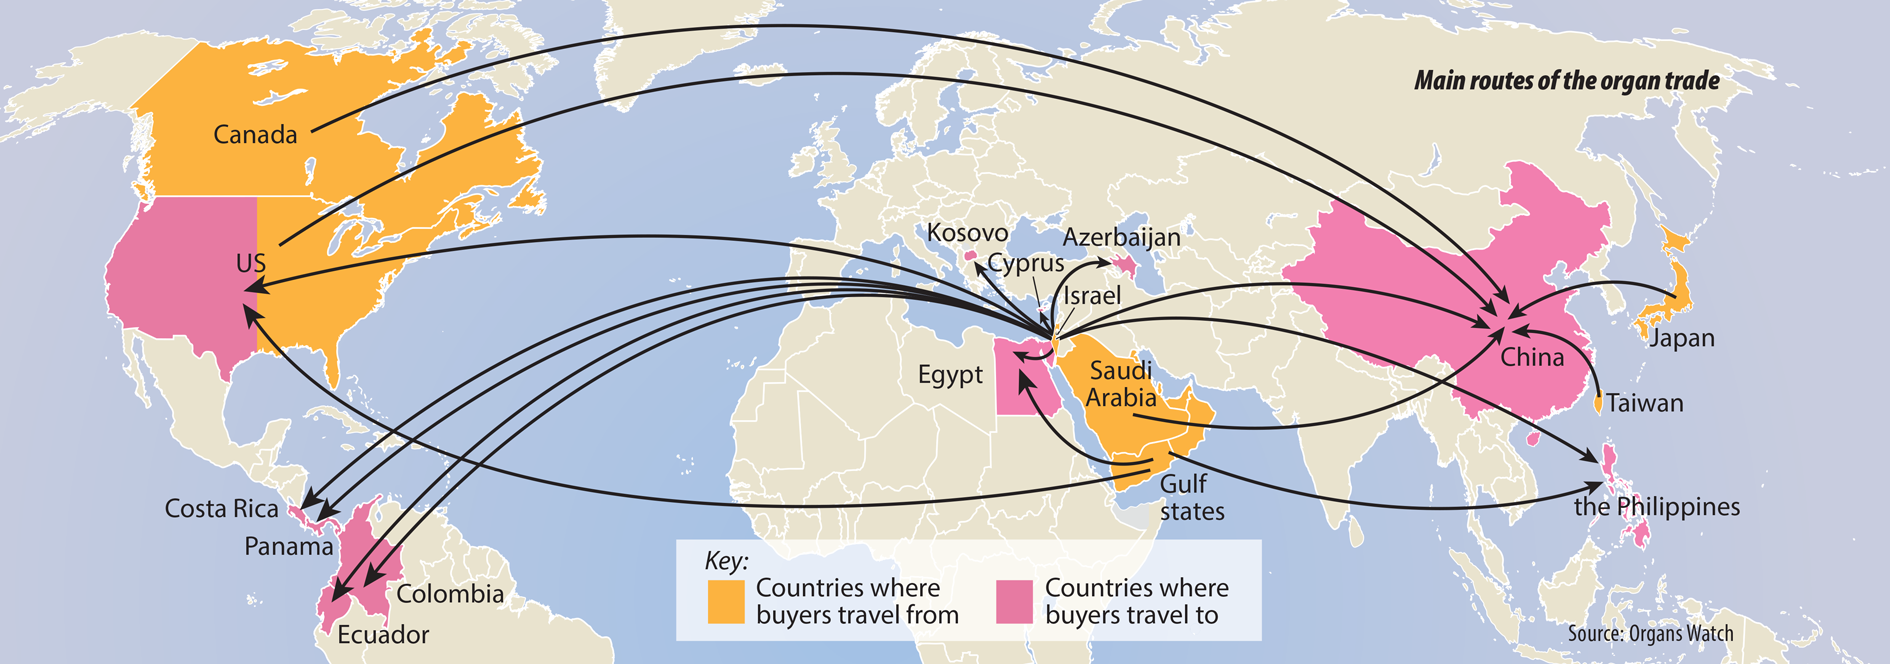 Map routes of the organ trade.